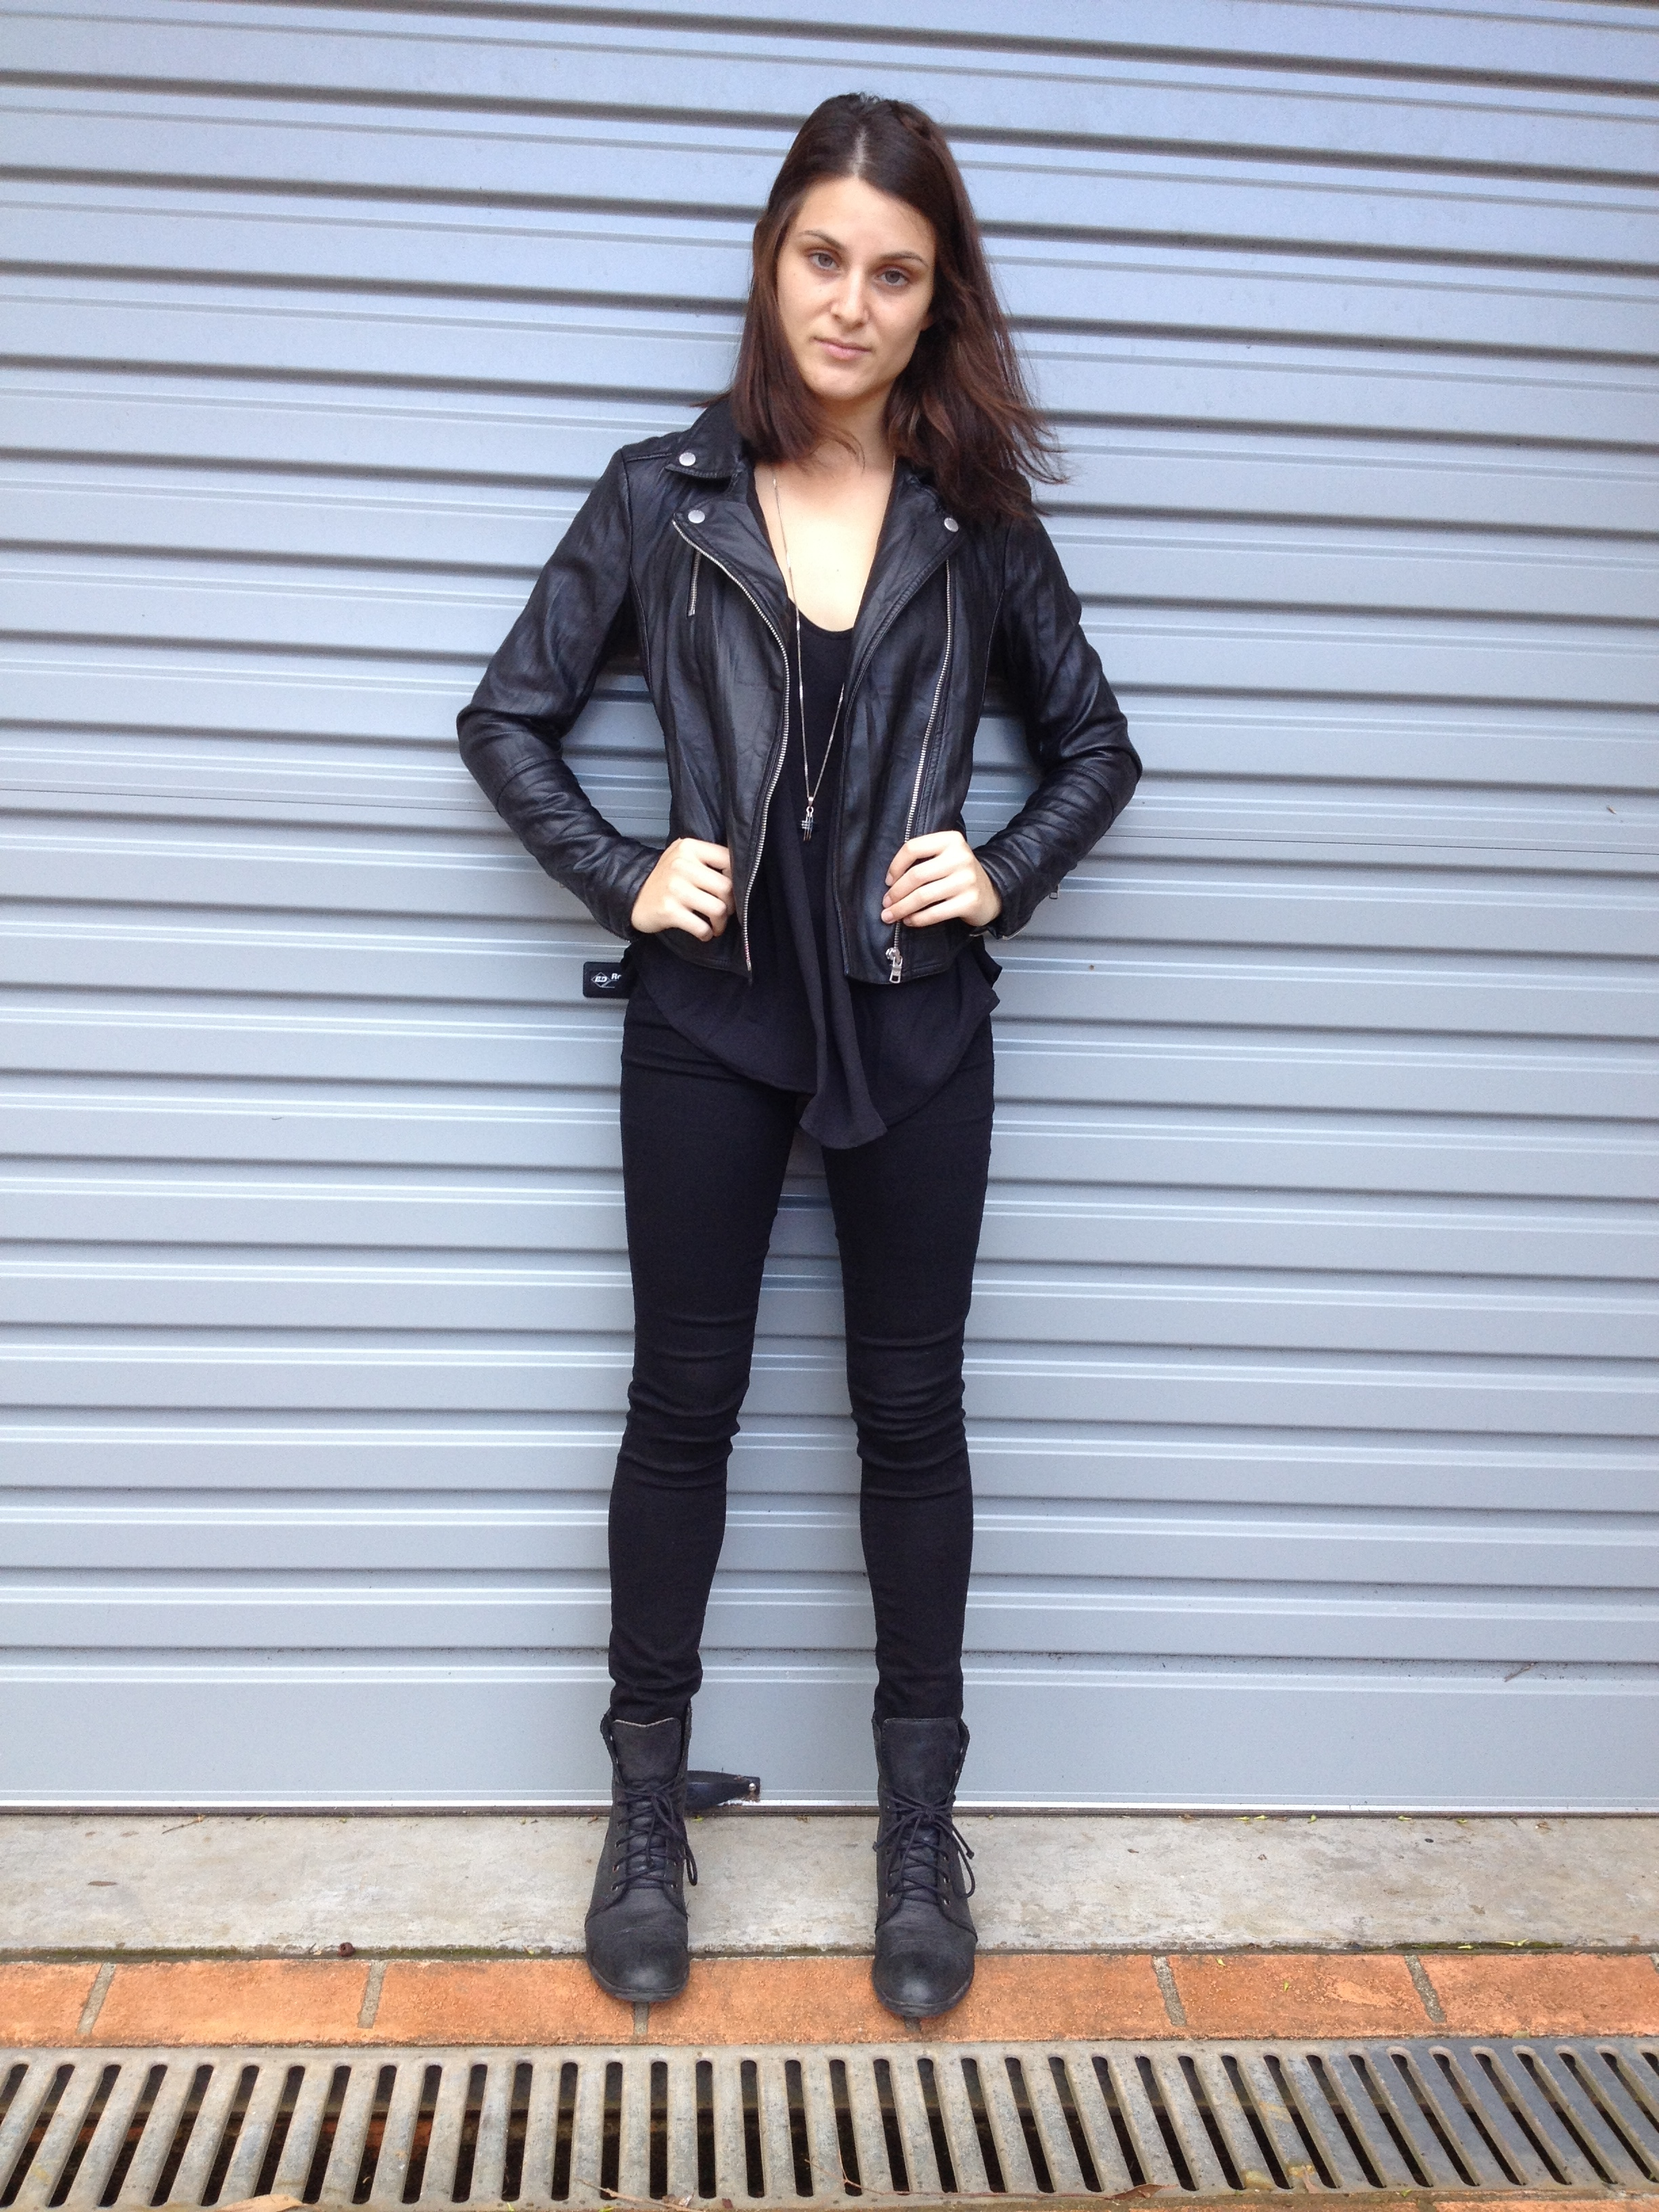 Armani Exchange Leather Jacket, Brandy Melville Top, American Eagle Jeans, Roc  Boots, TT Necklace.